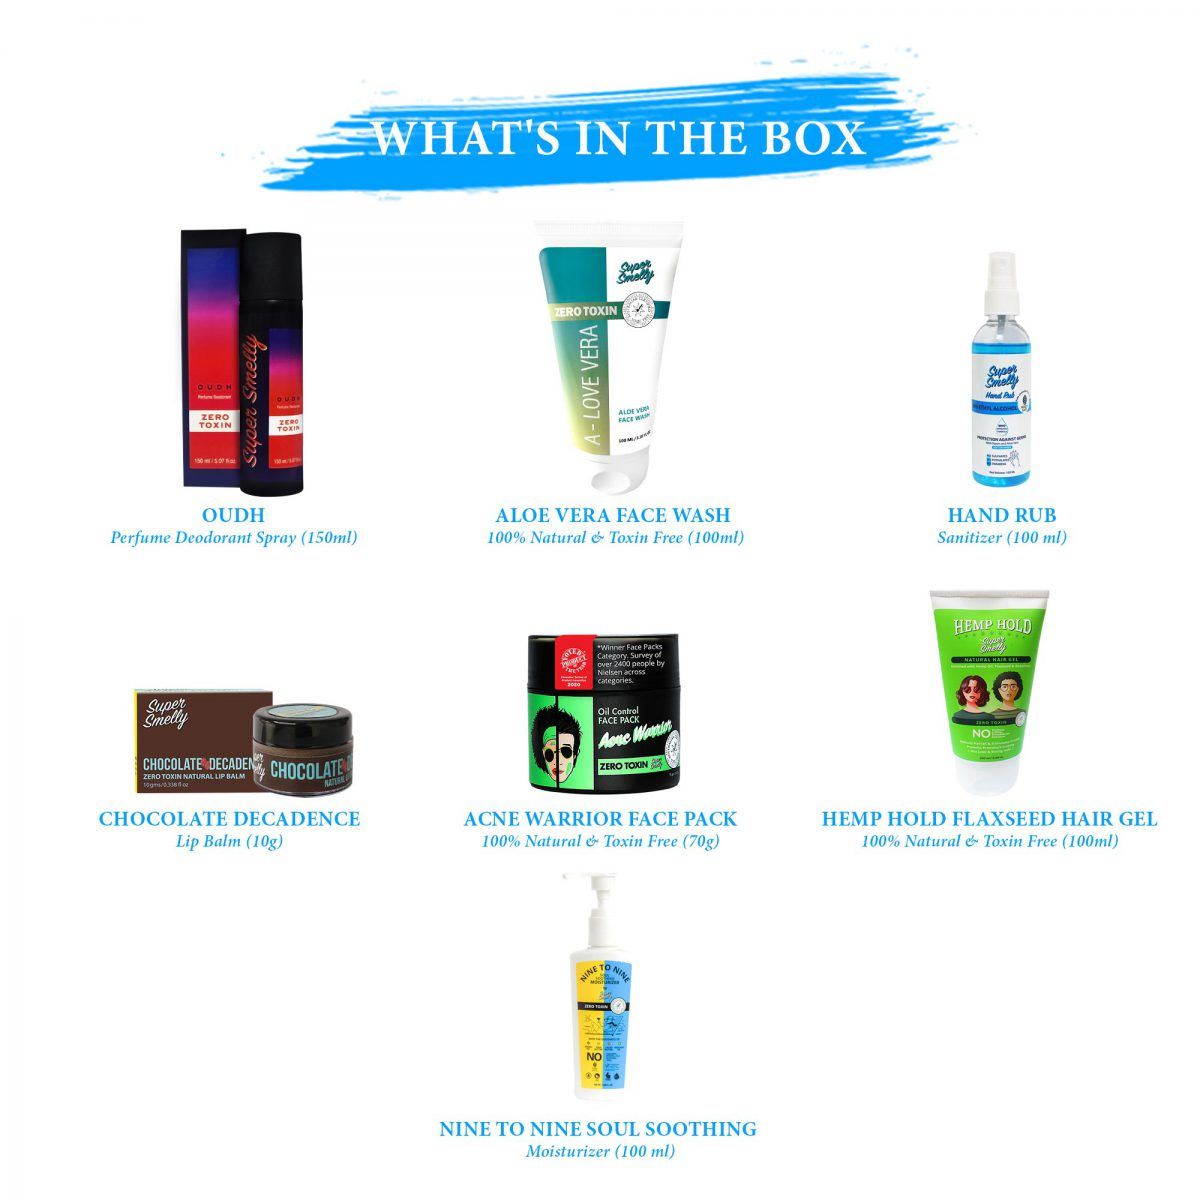 best skin care kit in india | Buy online supersmelly beauty combos | Buy supersmelly health and hygiene product combo